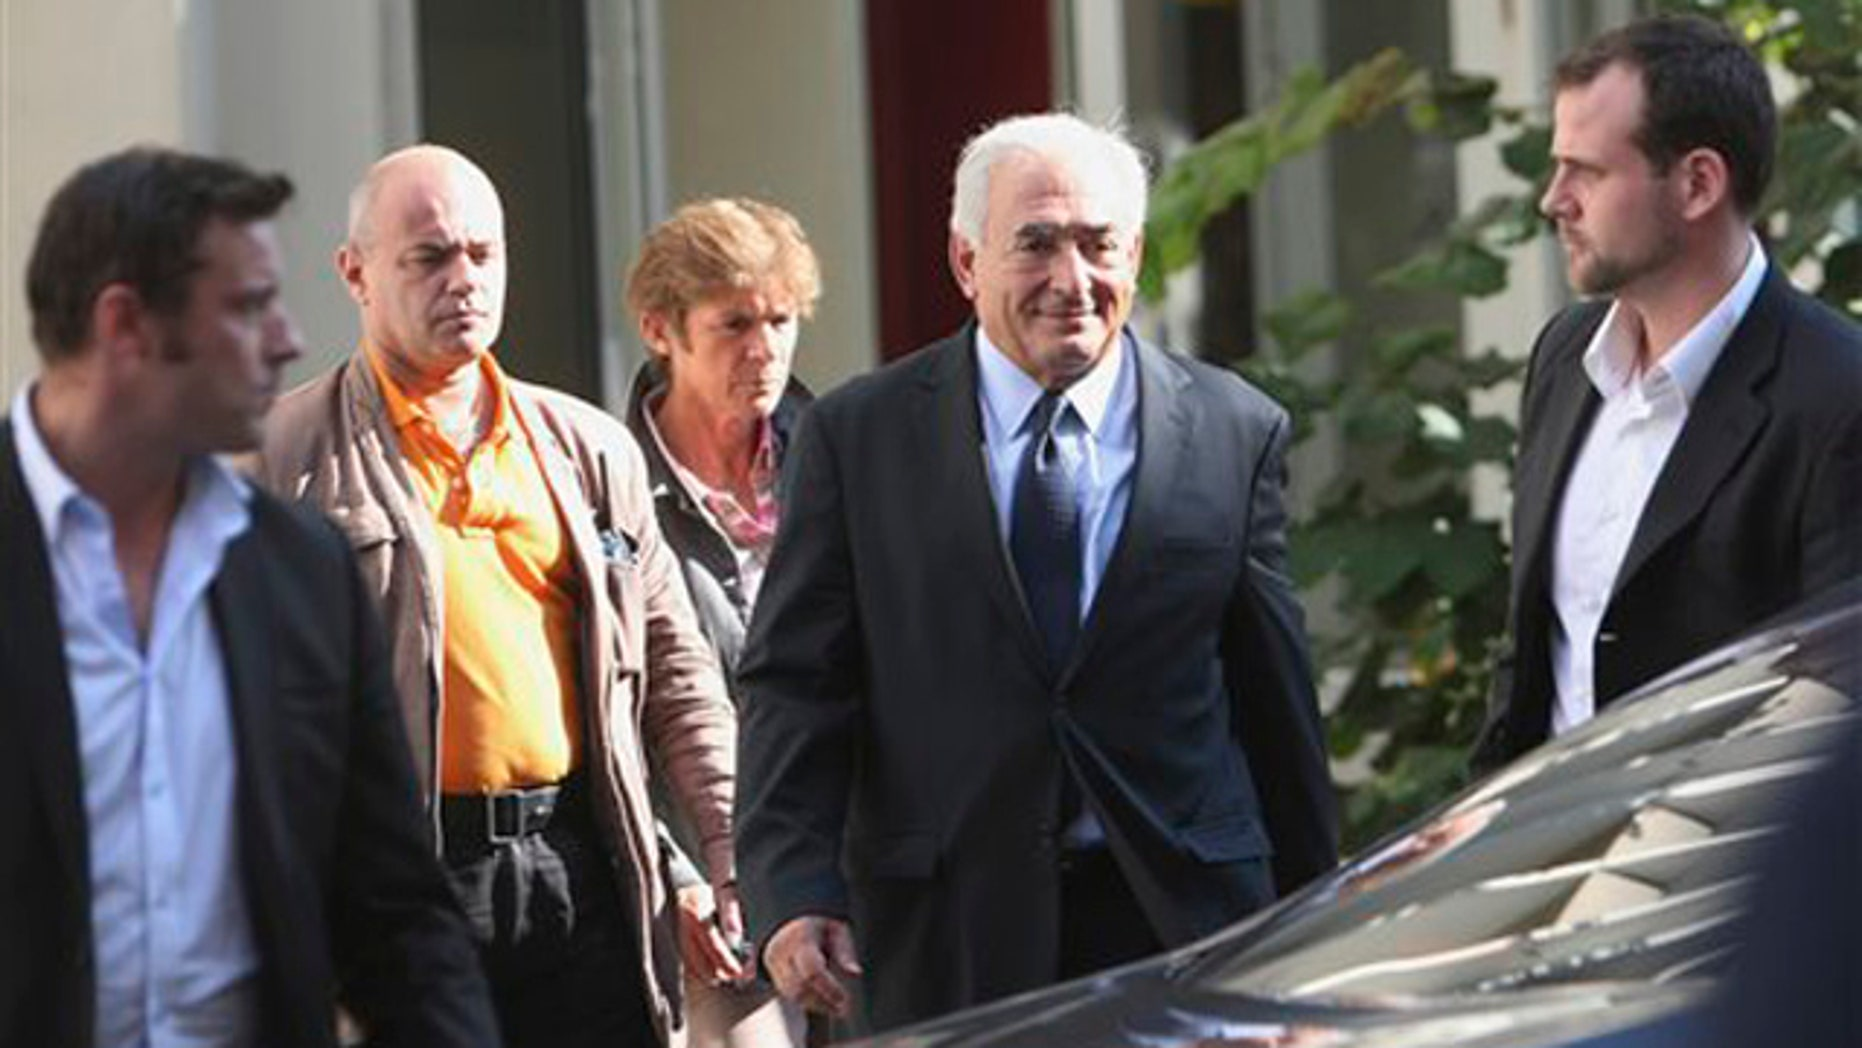 Former IMF chief Dominique Strauss-Kahn, 2nd right, leaves a police station after a one-on-one meeting with writer, Tristane Banon, who accuses him of attempted rape, in Paris, France, Thursday, Sept. 29, 2011.